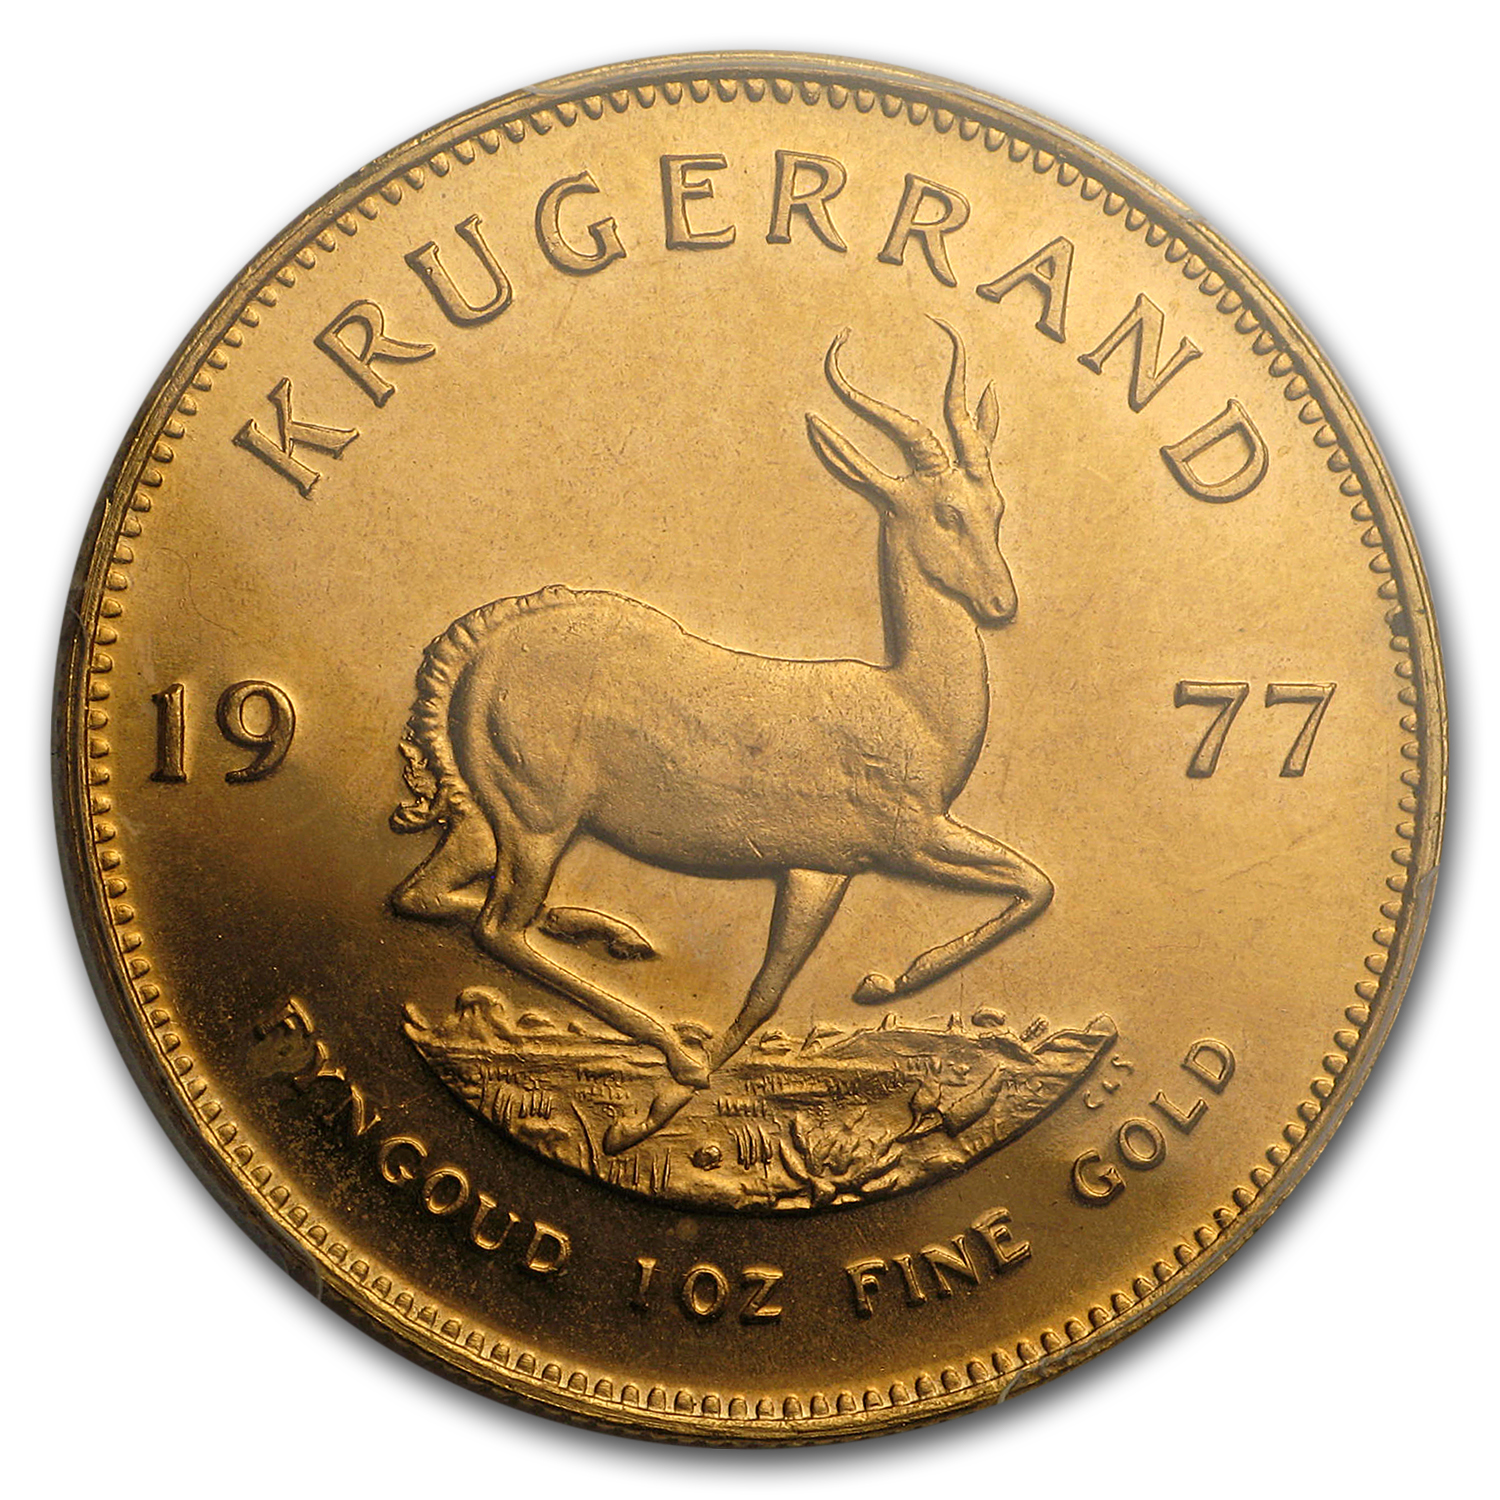 1977 South Africa 1 oz Gold Krugerrand MS-67 PCGS